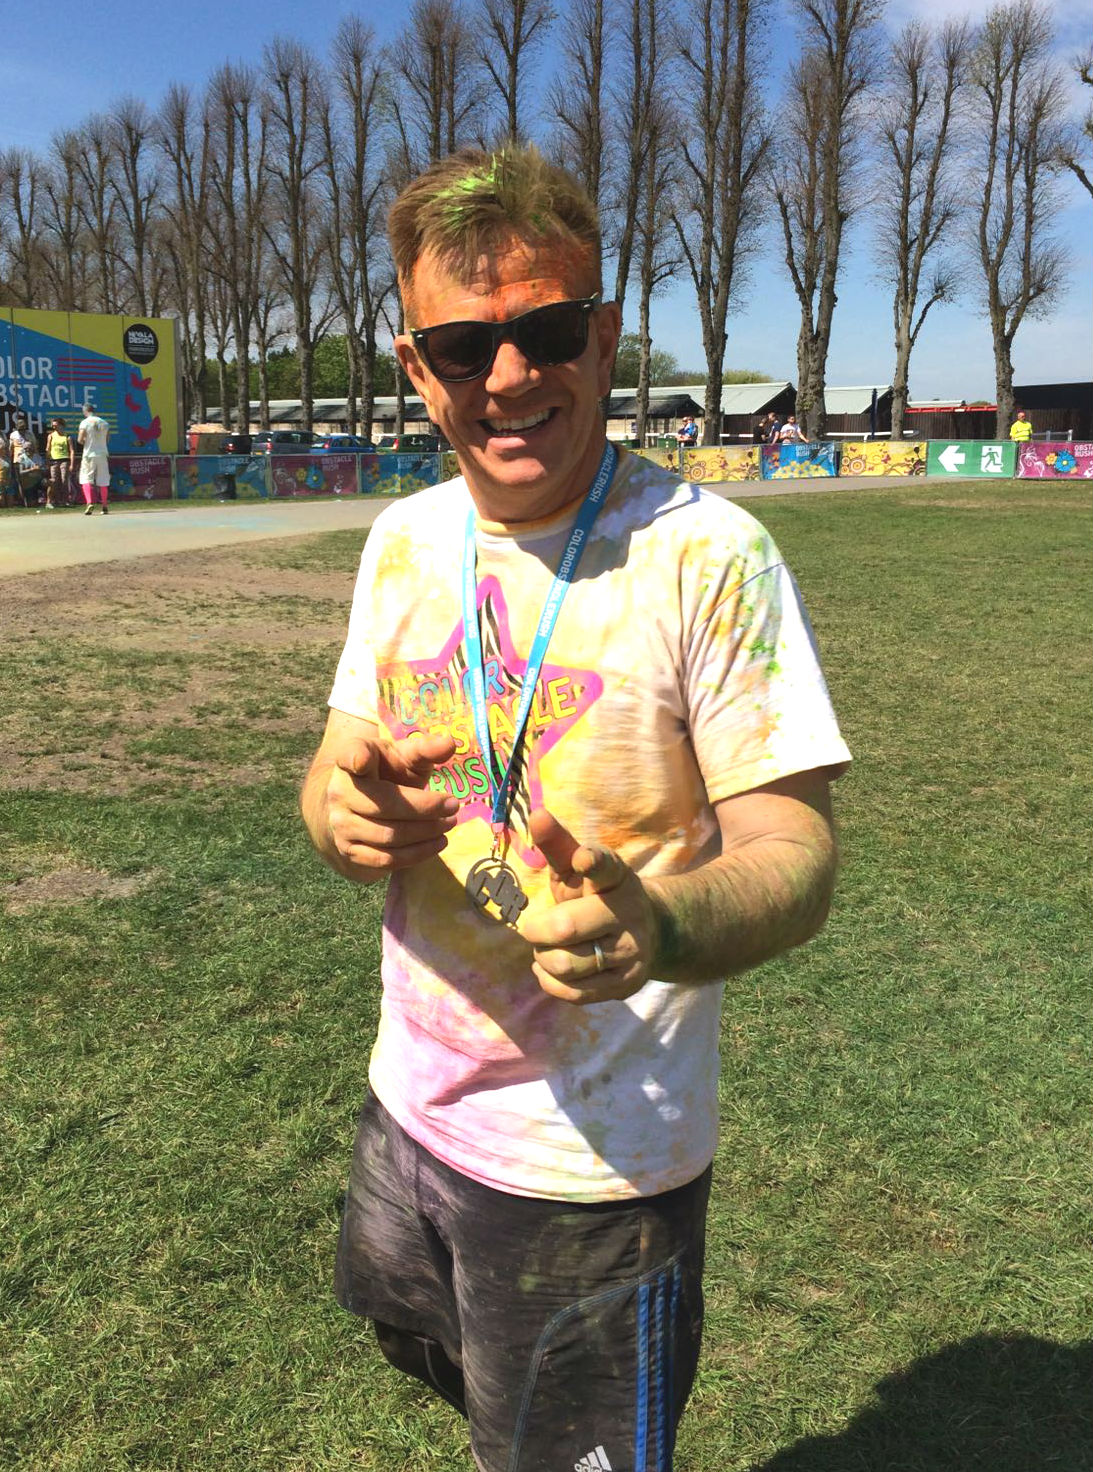 Arran Atkinson takes part in Color Obstacle Rush 5k